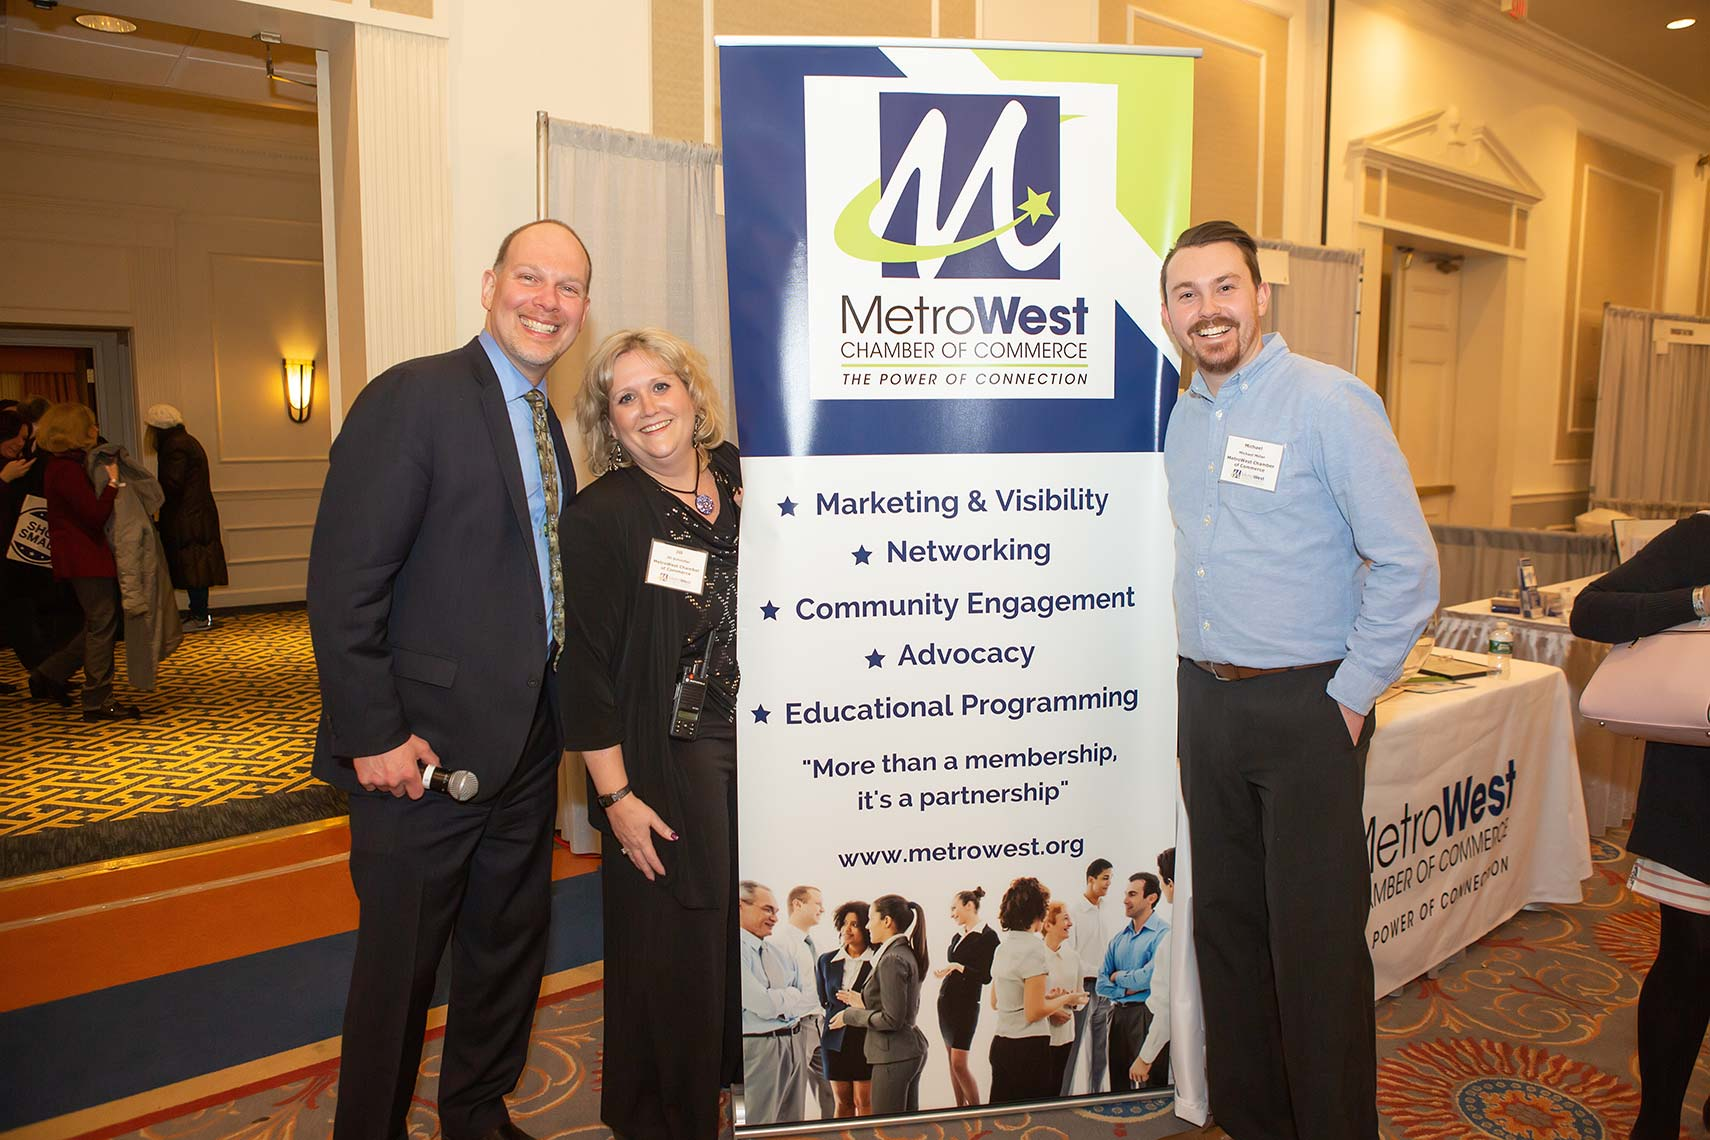 Metrowest Chamber of Commerce members pose by sign at Taste of Metrowest